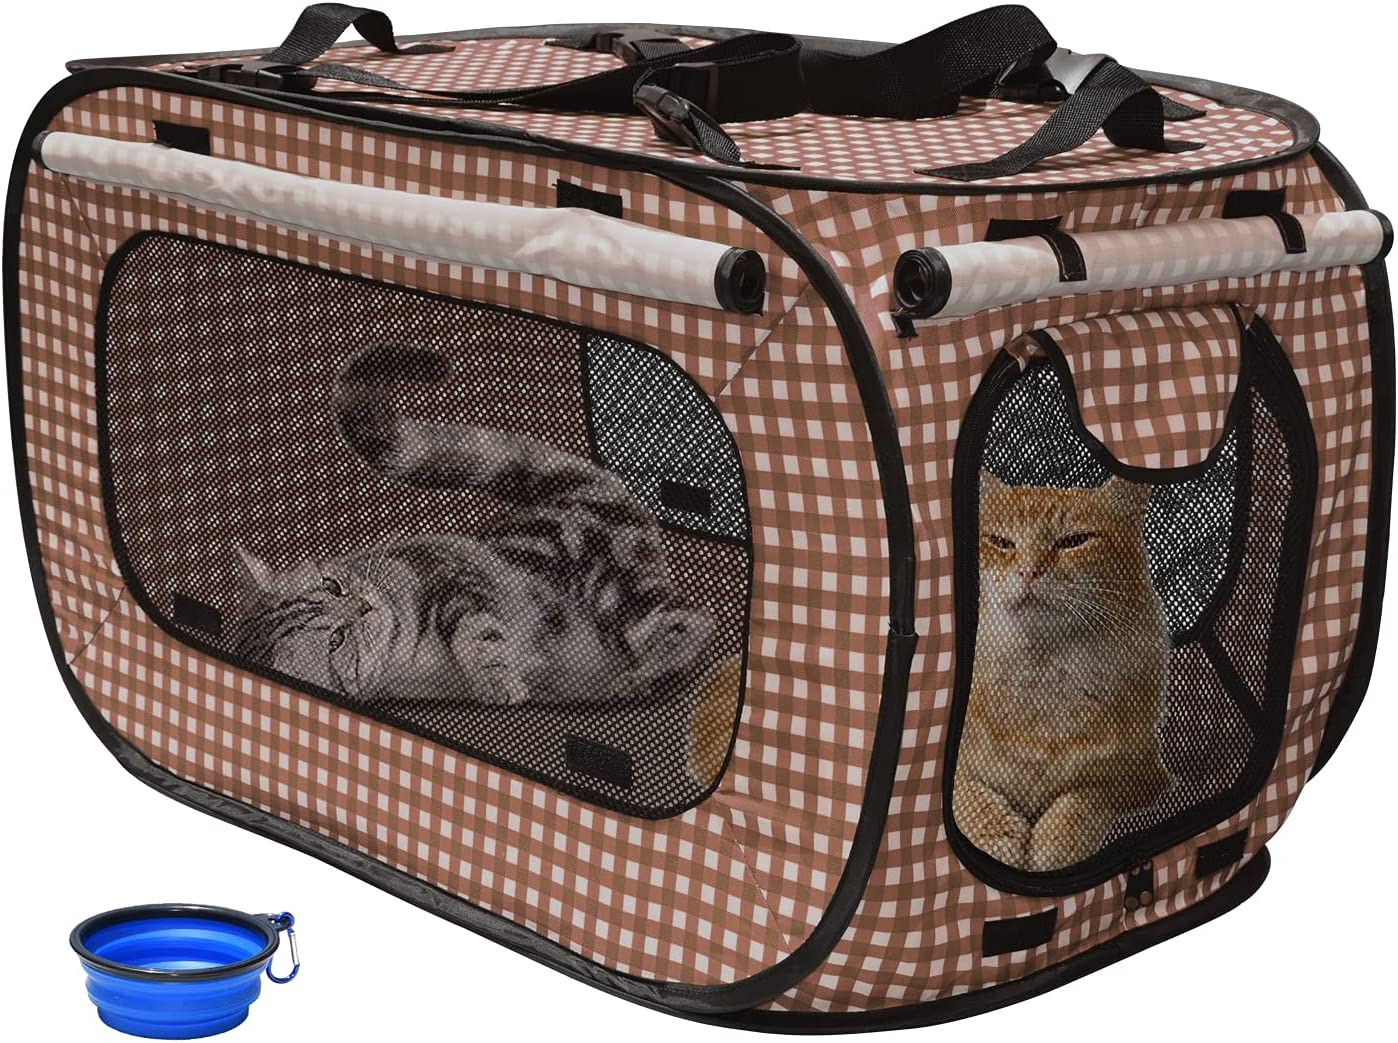 Cheap sale Rolscaler Portable Cat Cage Kennels Cats trust Por Outdoor for Travel